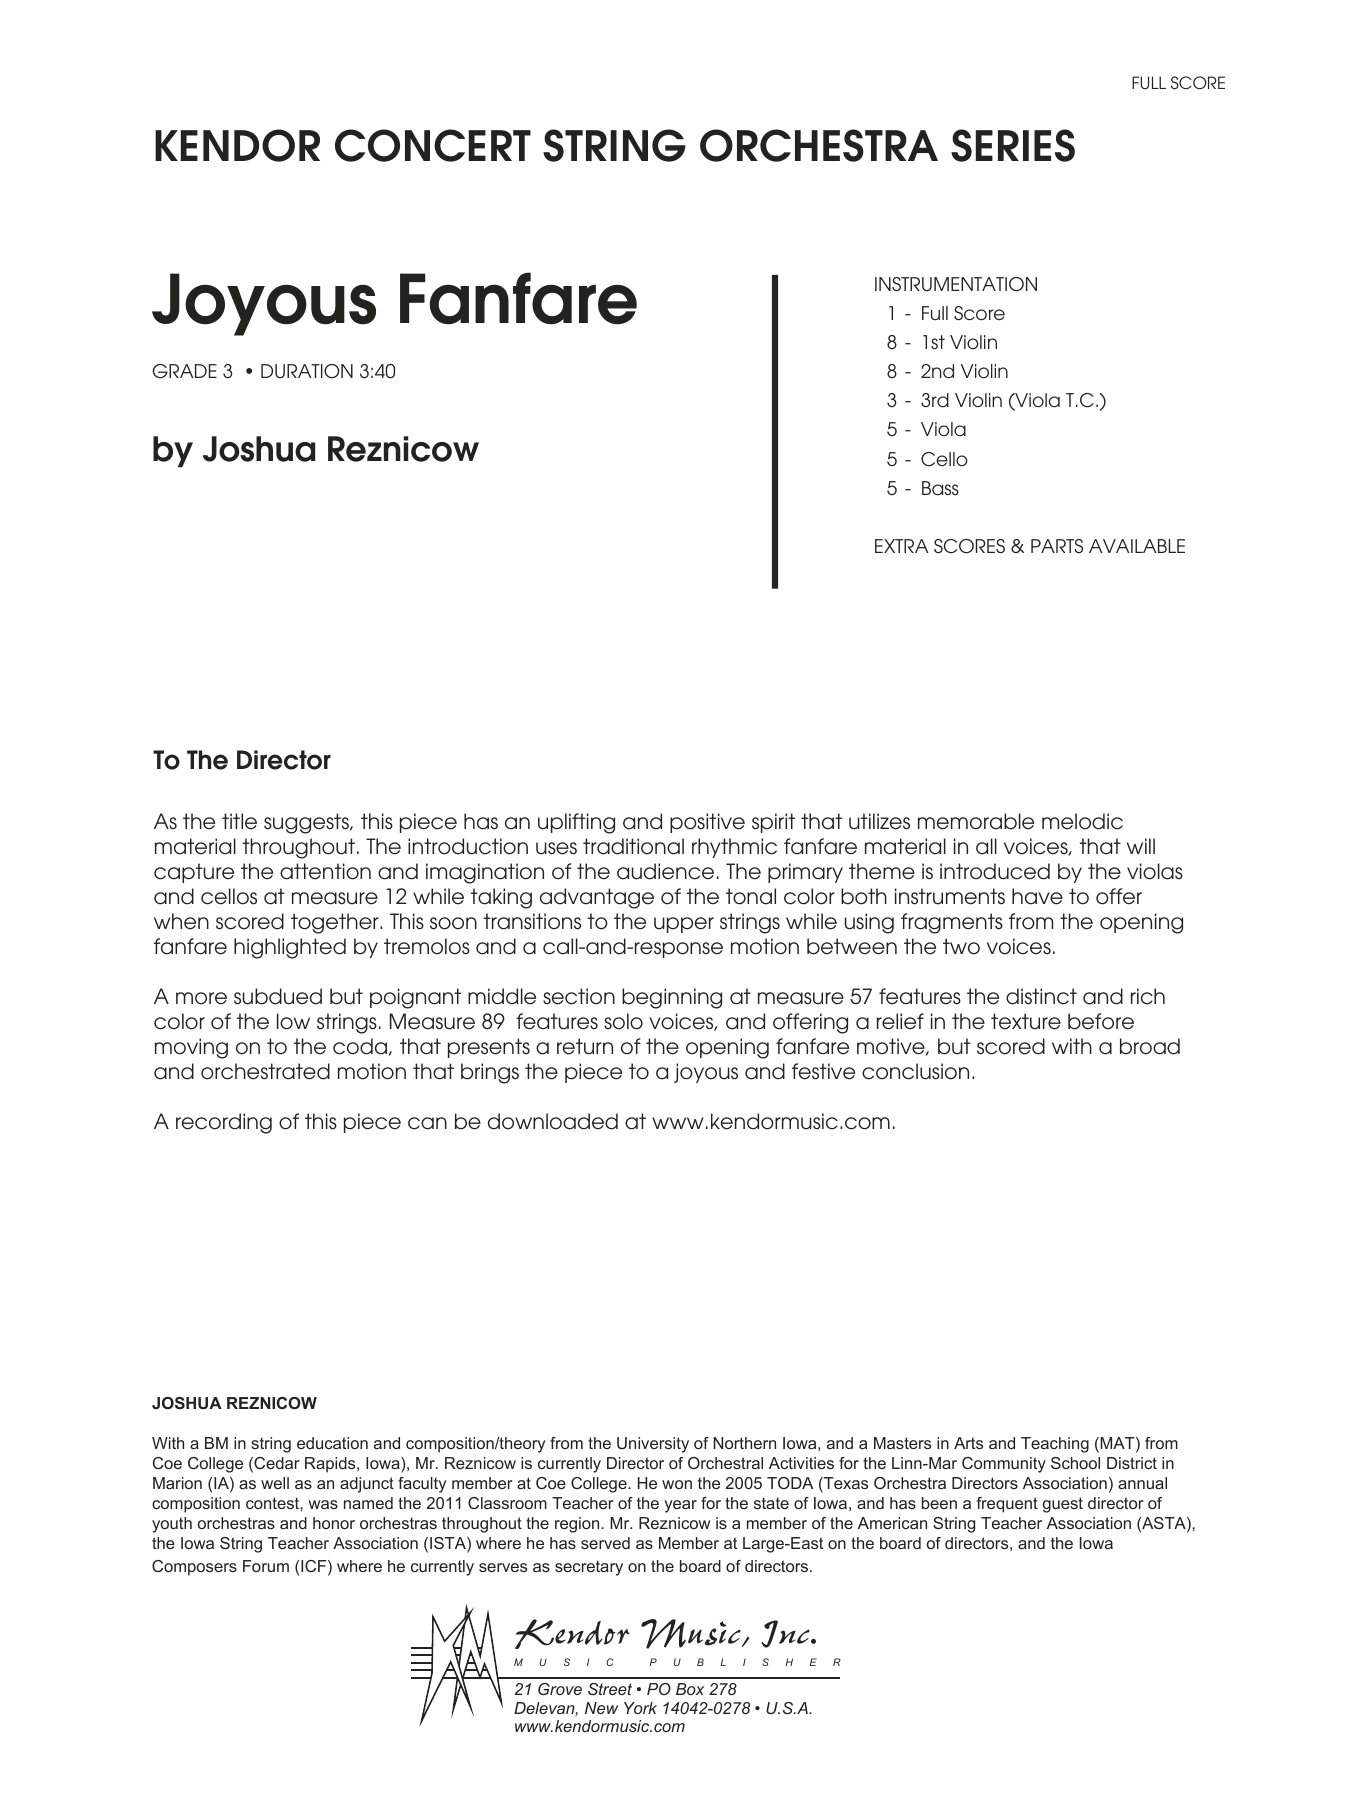 Joyous Fanfare - Full Score Sheet Music